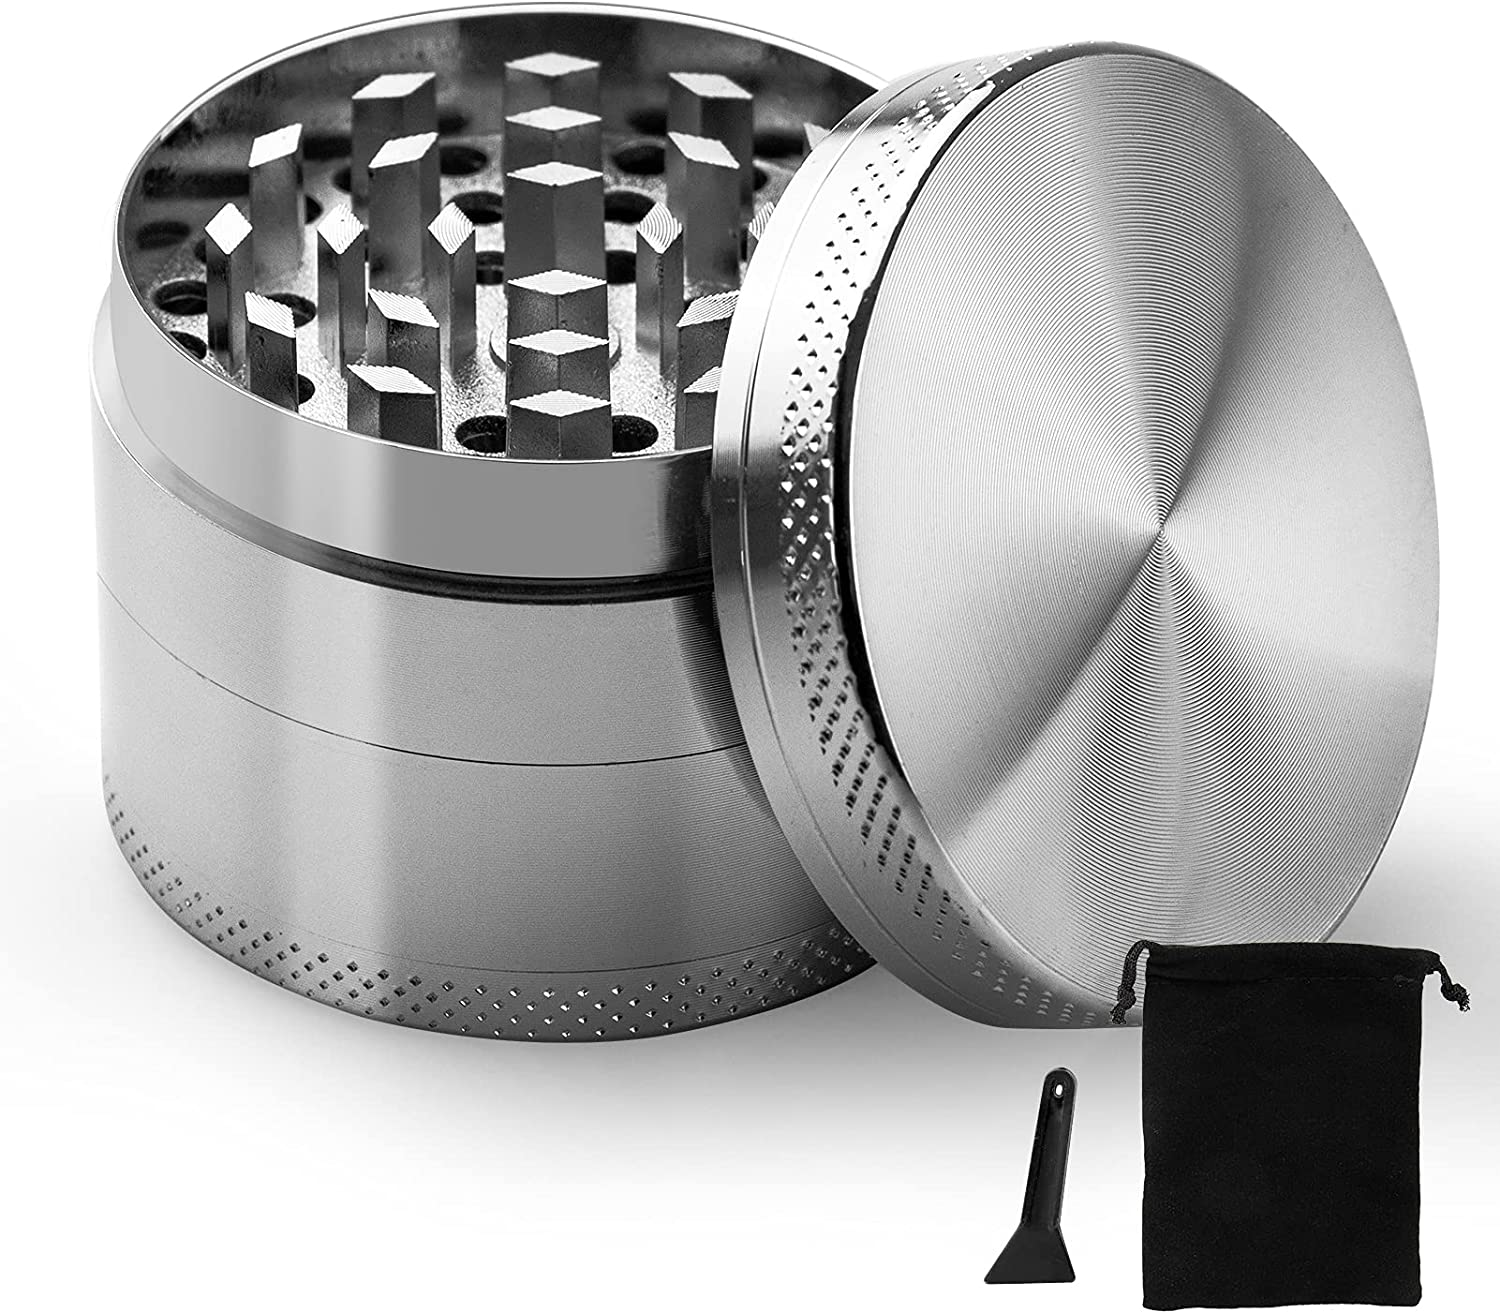 2 Max 54% OFF Inch Herb Limited time cheap sale Grinder 4-Piece with S Sharpteeths Portable